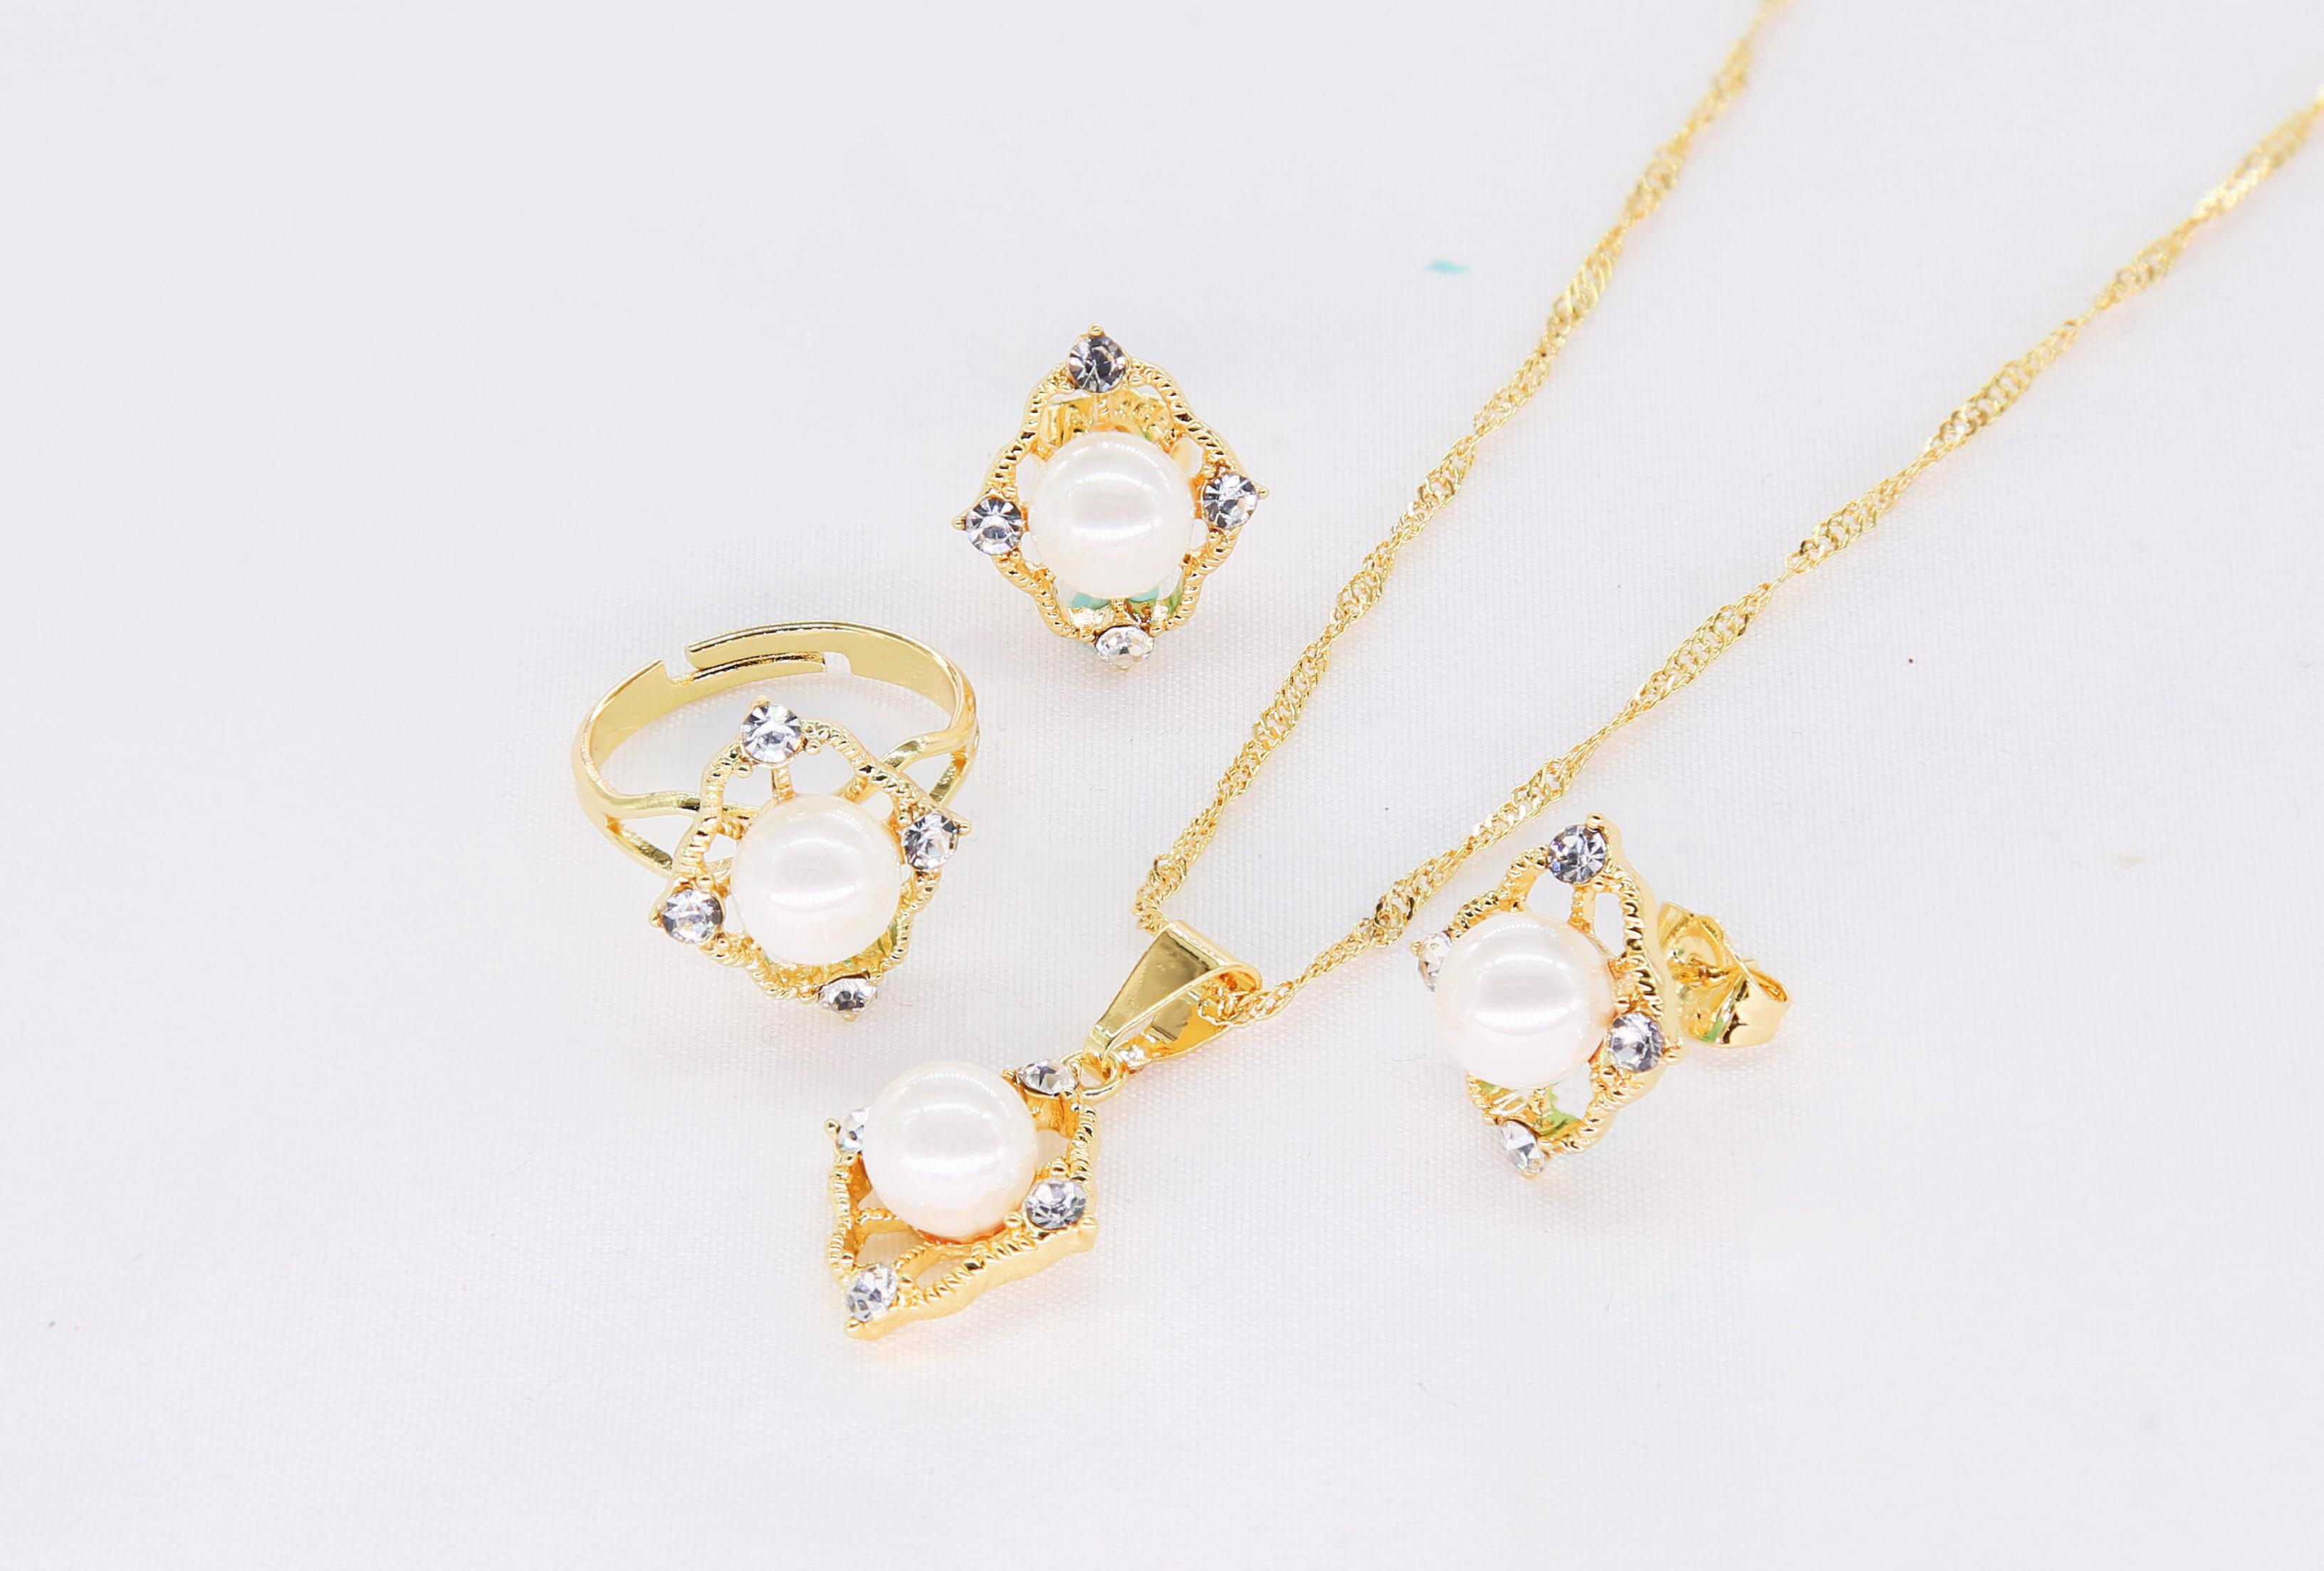 62998a1292dc6 DS Korea design style party wedding fashion luxury ladies  necklace,ring,earring jewellery set gift with a box